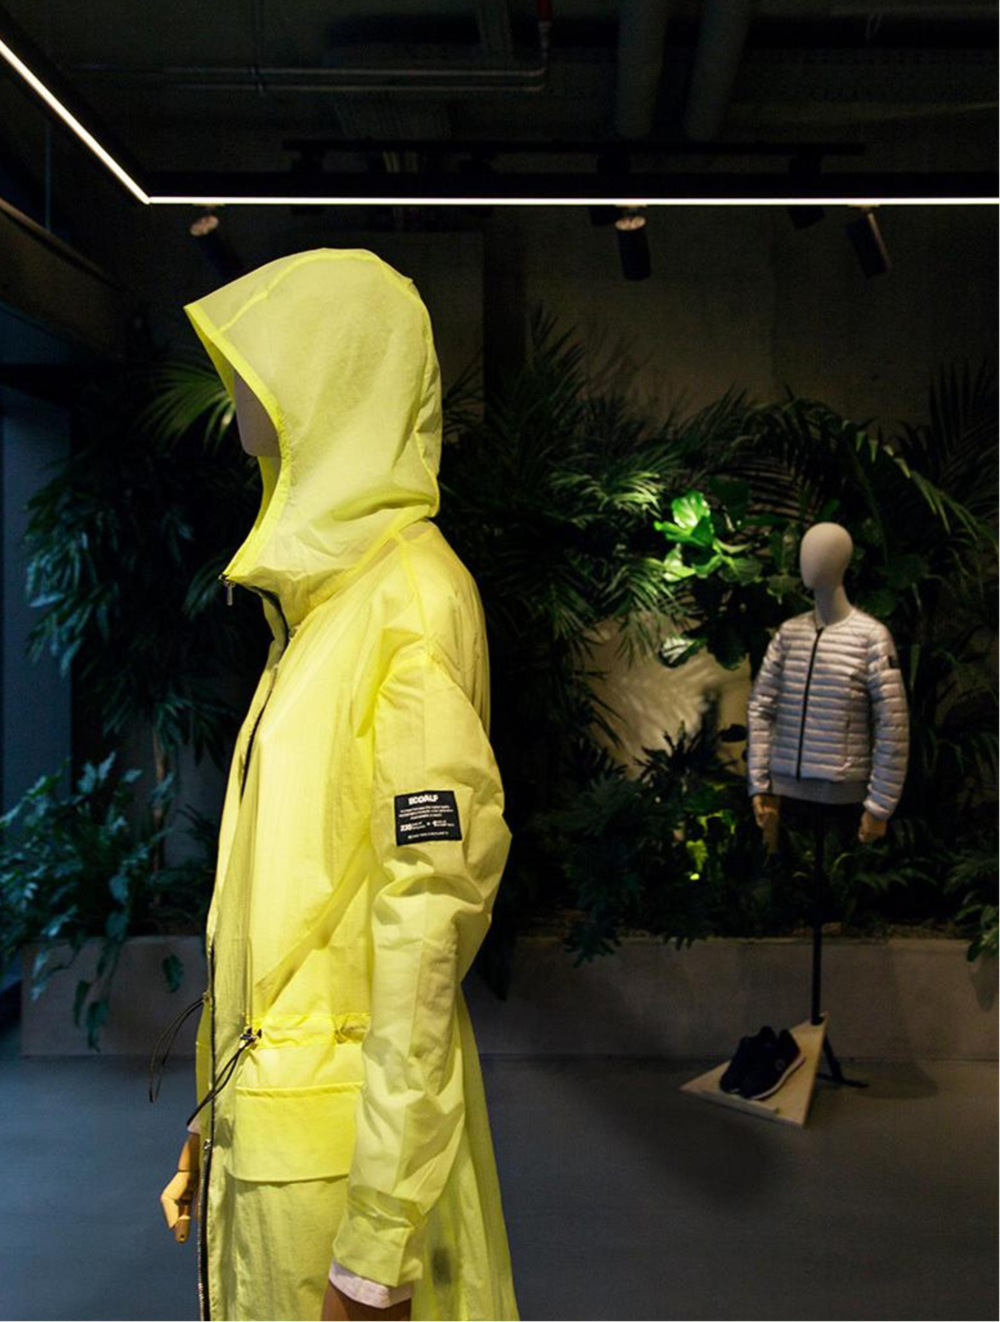 ecoalf the stores-page-001.jpg.png